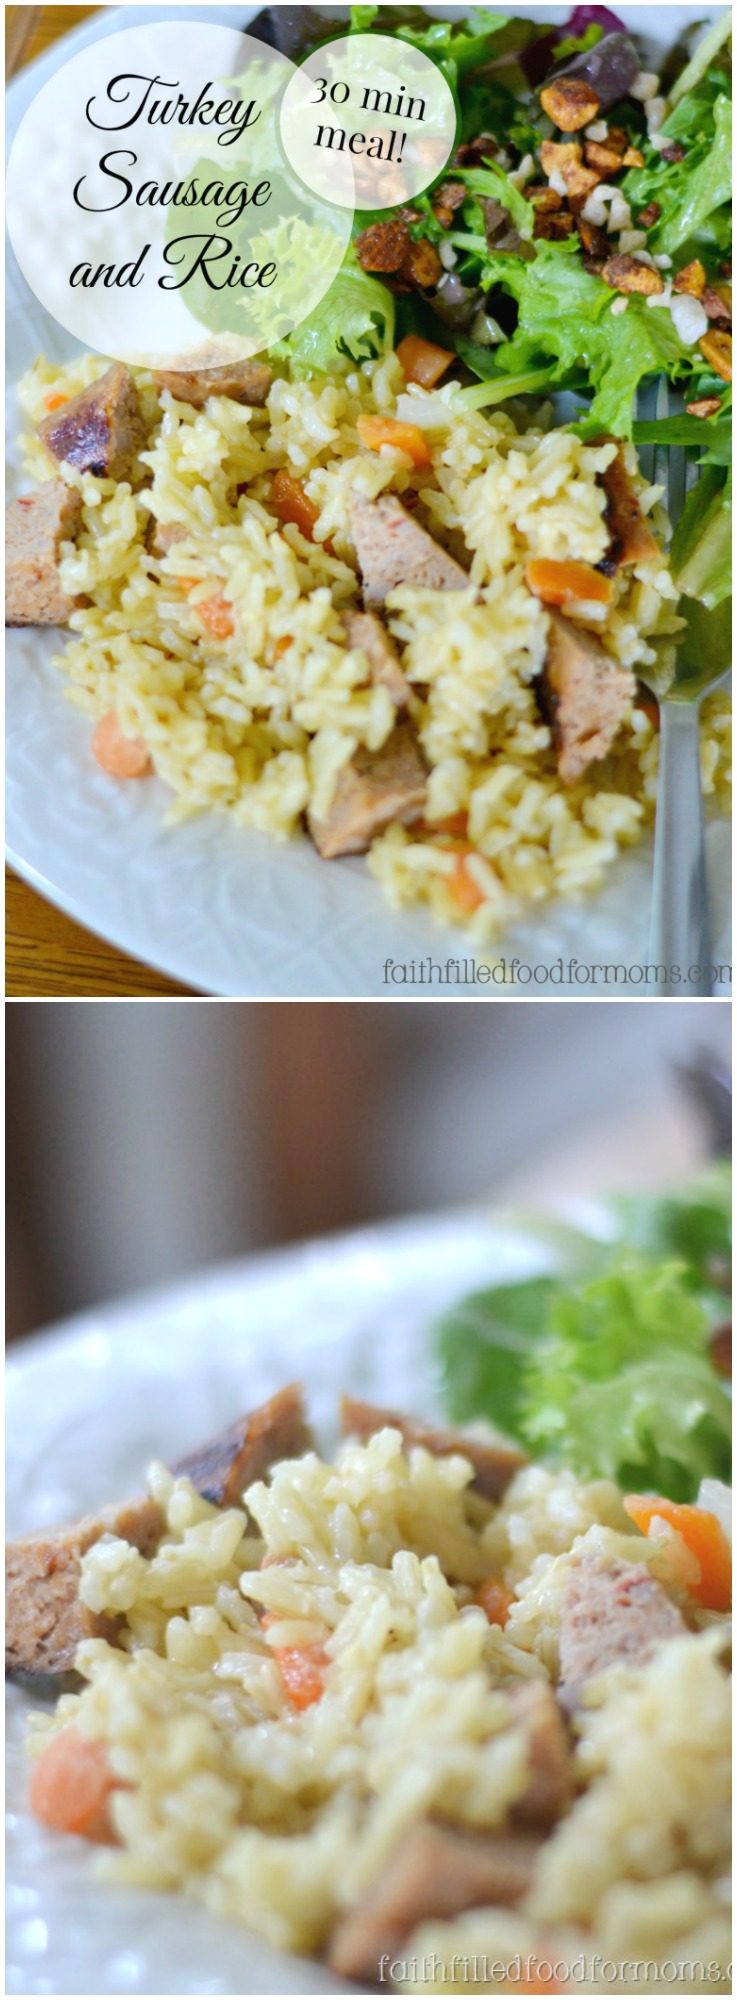 This Delicious Turkey Sausage and Rice will become one of your new healthy skillet dinner recipes!  Super easy with simple ingredients! #turkey #recipes #dinner #dinnerrecipes